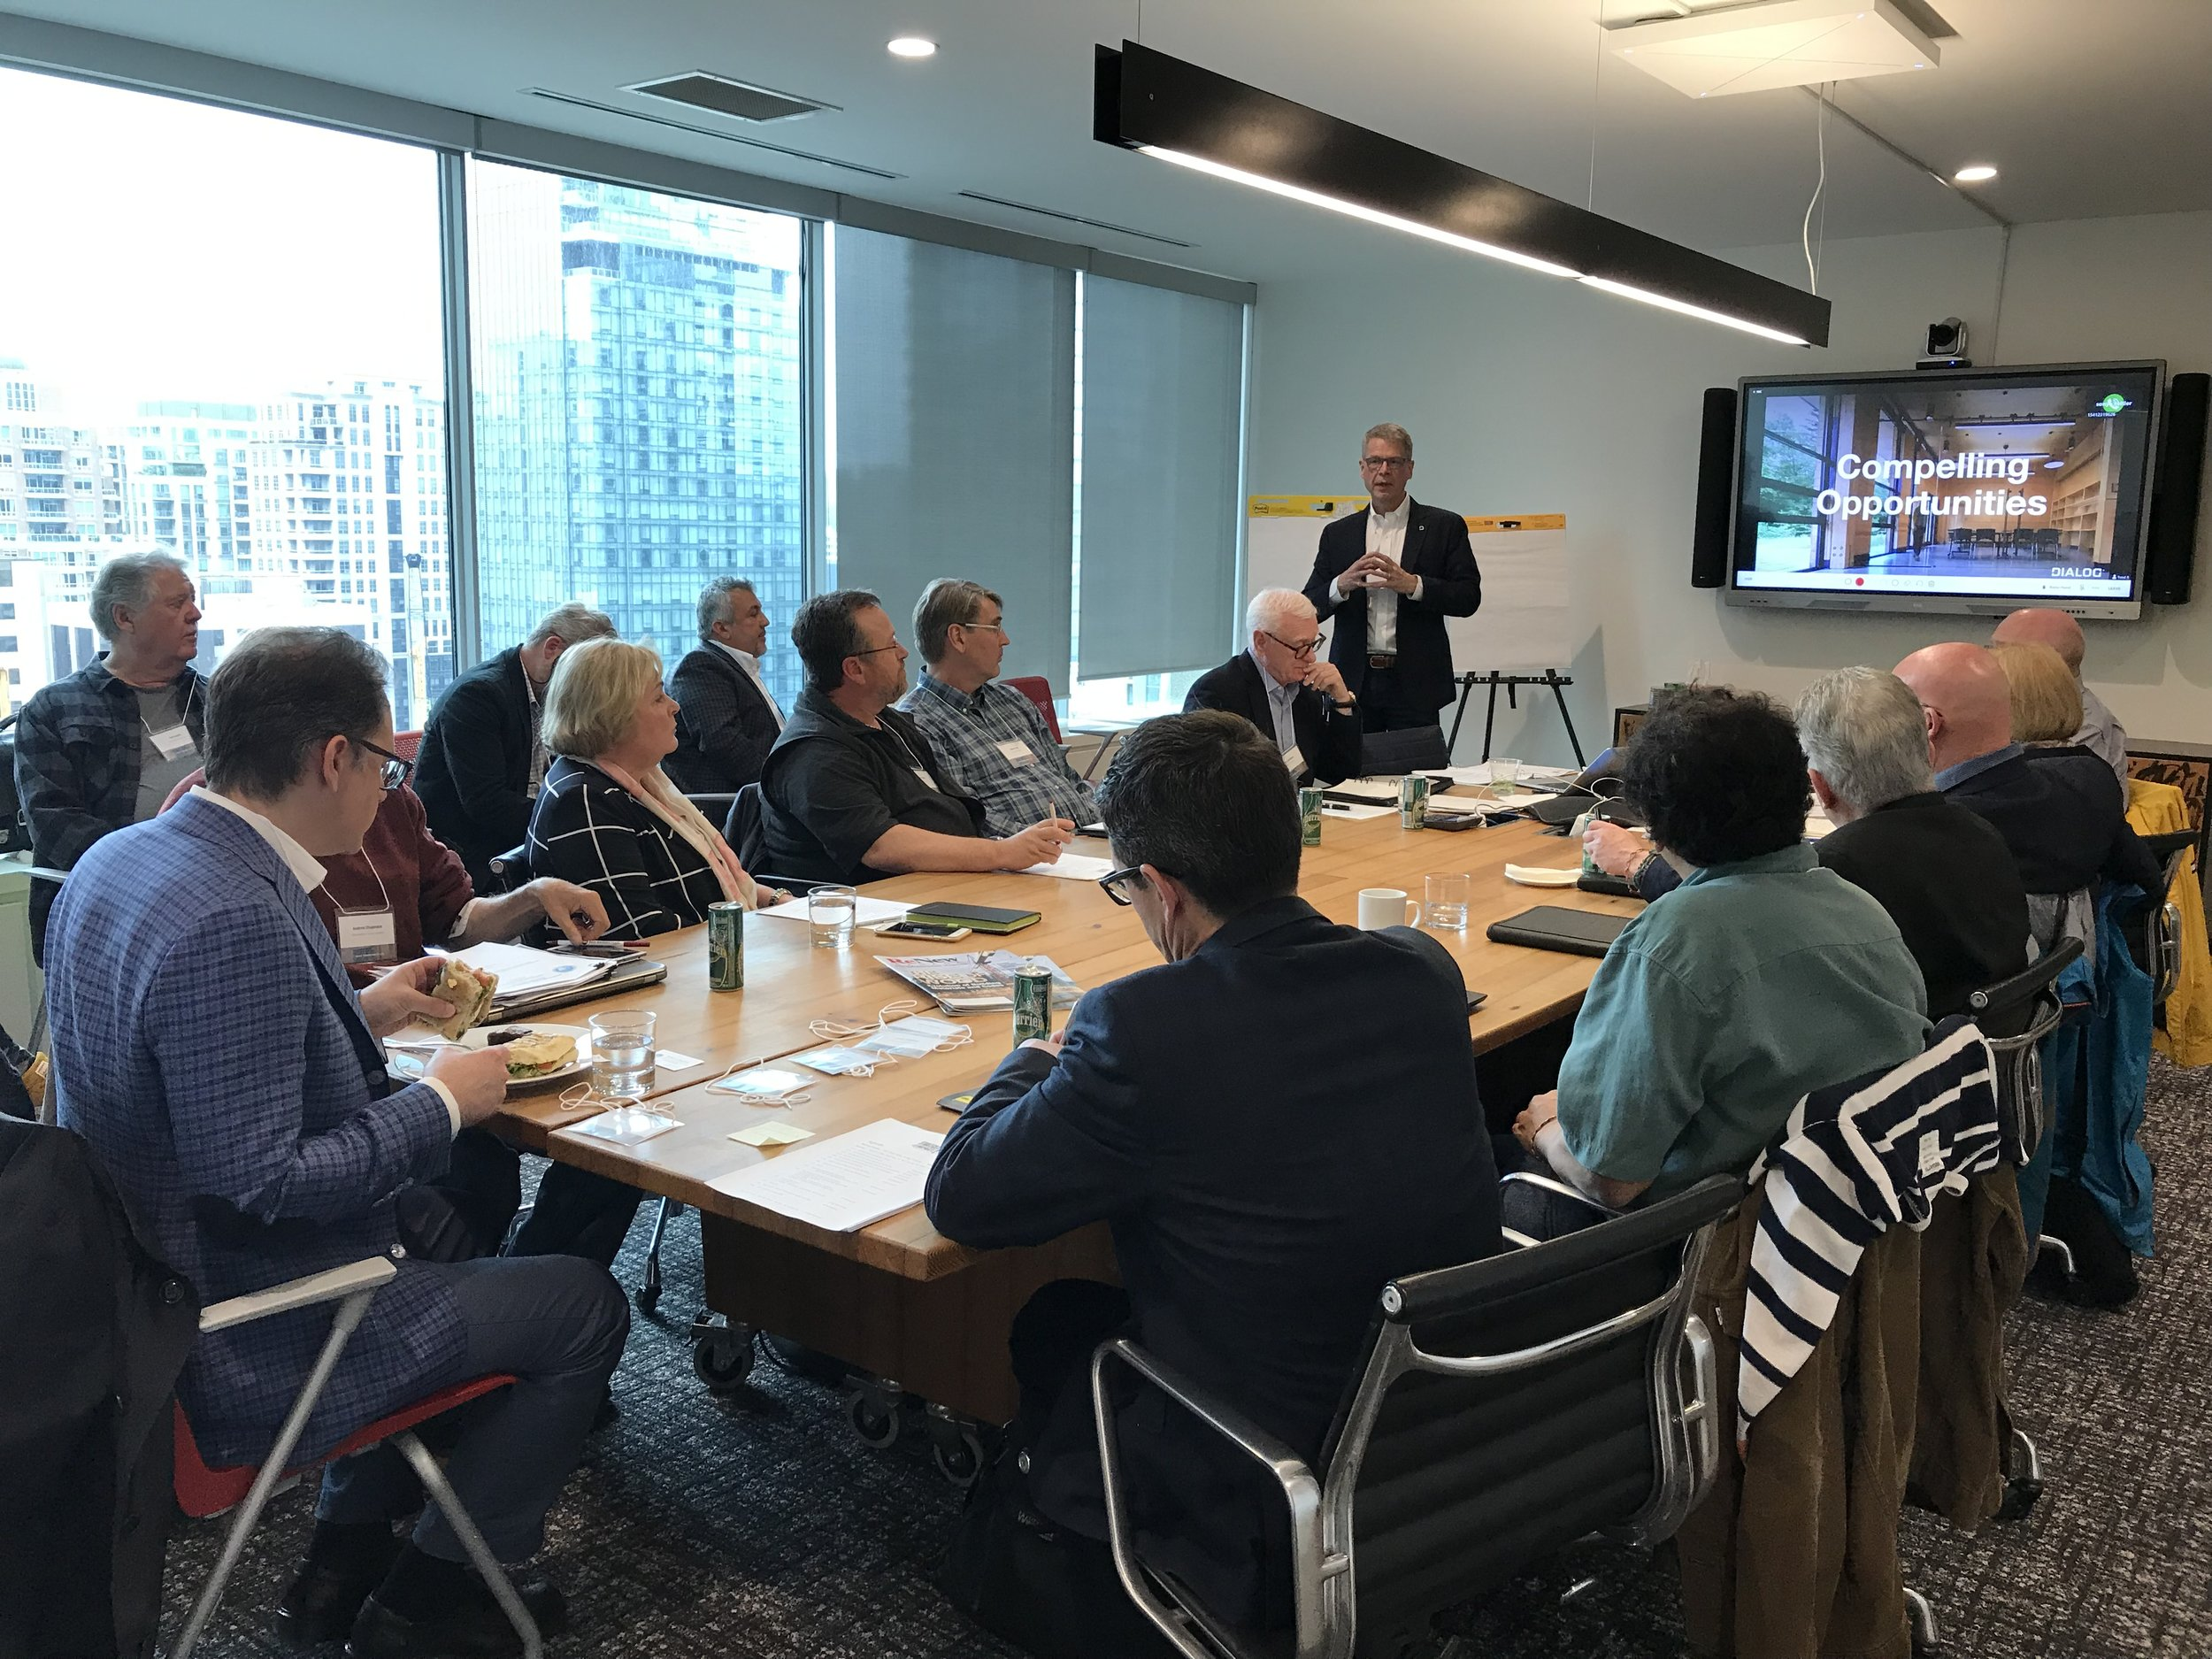 MTI Photo/Taha Syed: DIALOG Founding Partner  Craig Applegath delivering opening remarks at the Mass Timber Institute Strategy Workshop. (4 June 2019)